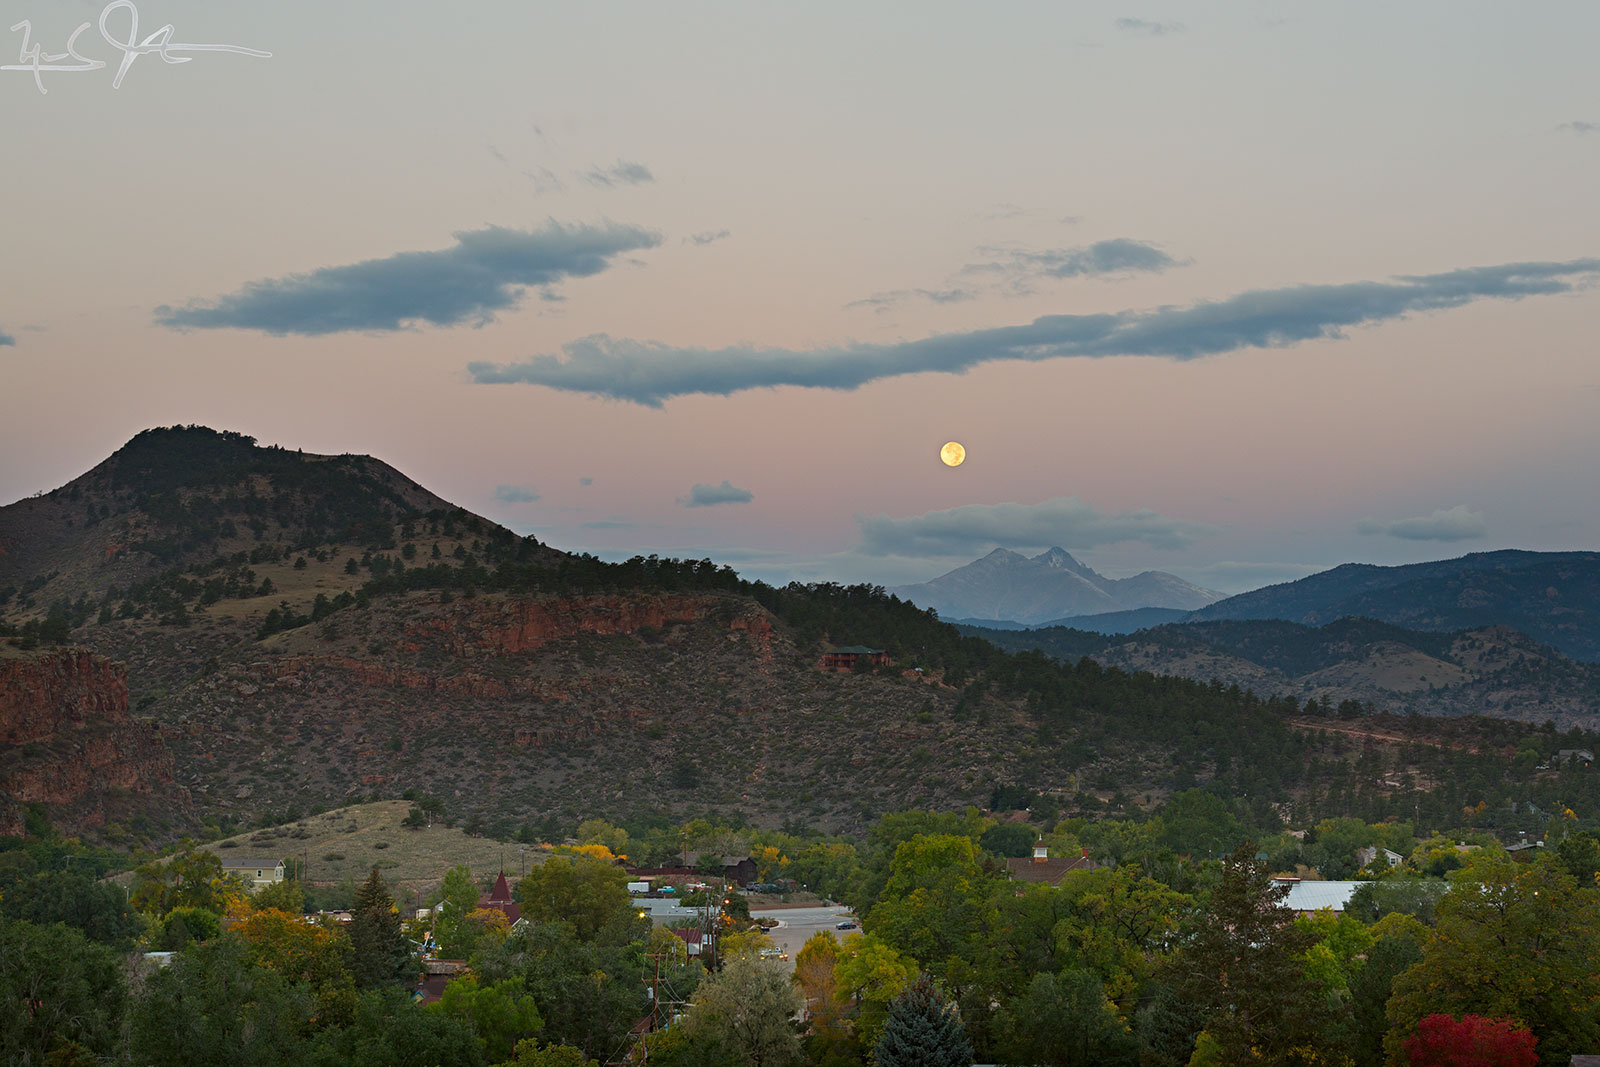 6:47 AM:  The Harvest Moon slides down and right [North] towards the summits of Mt. Meeker and Long's Peak, over the town of Lyons, Colorado.